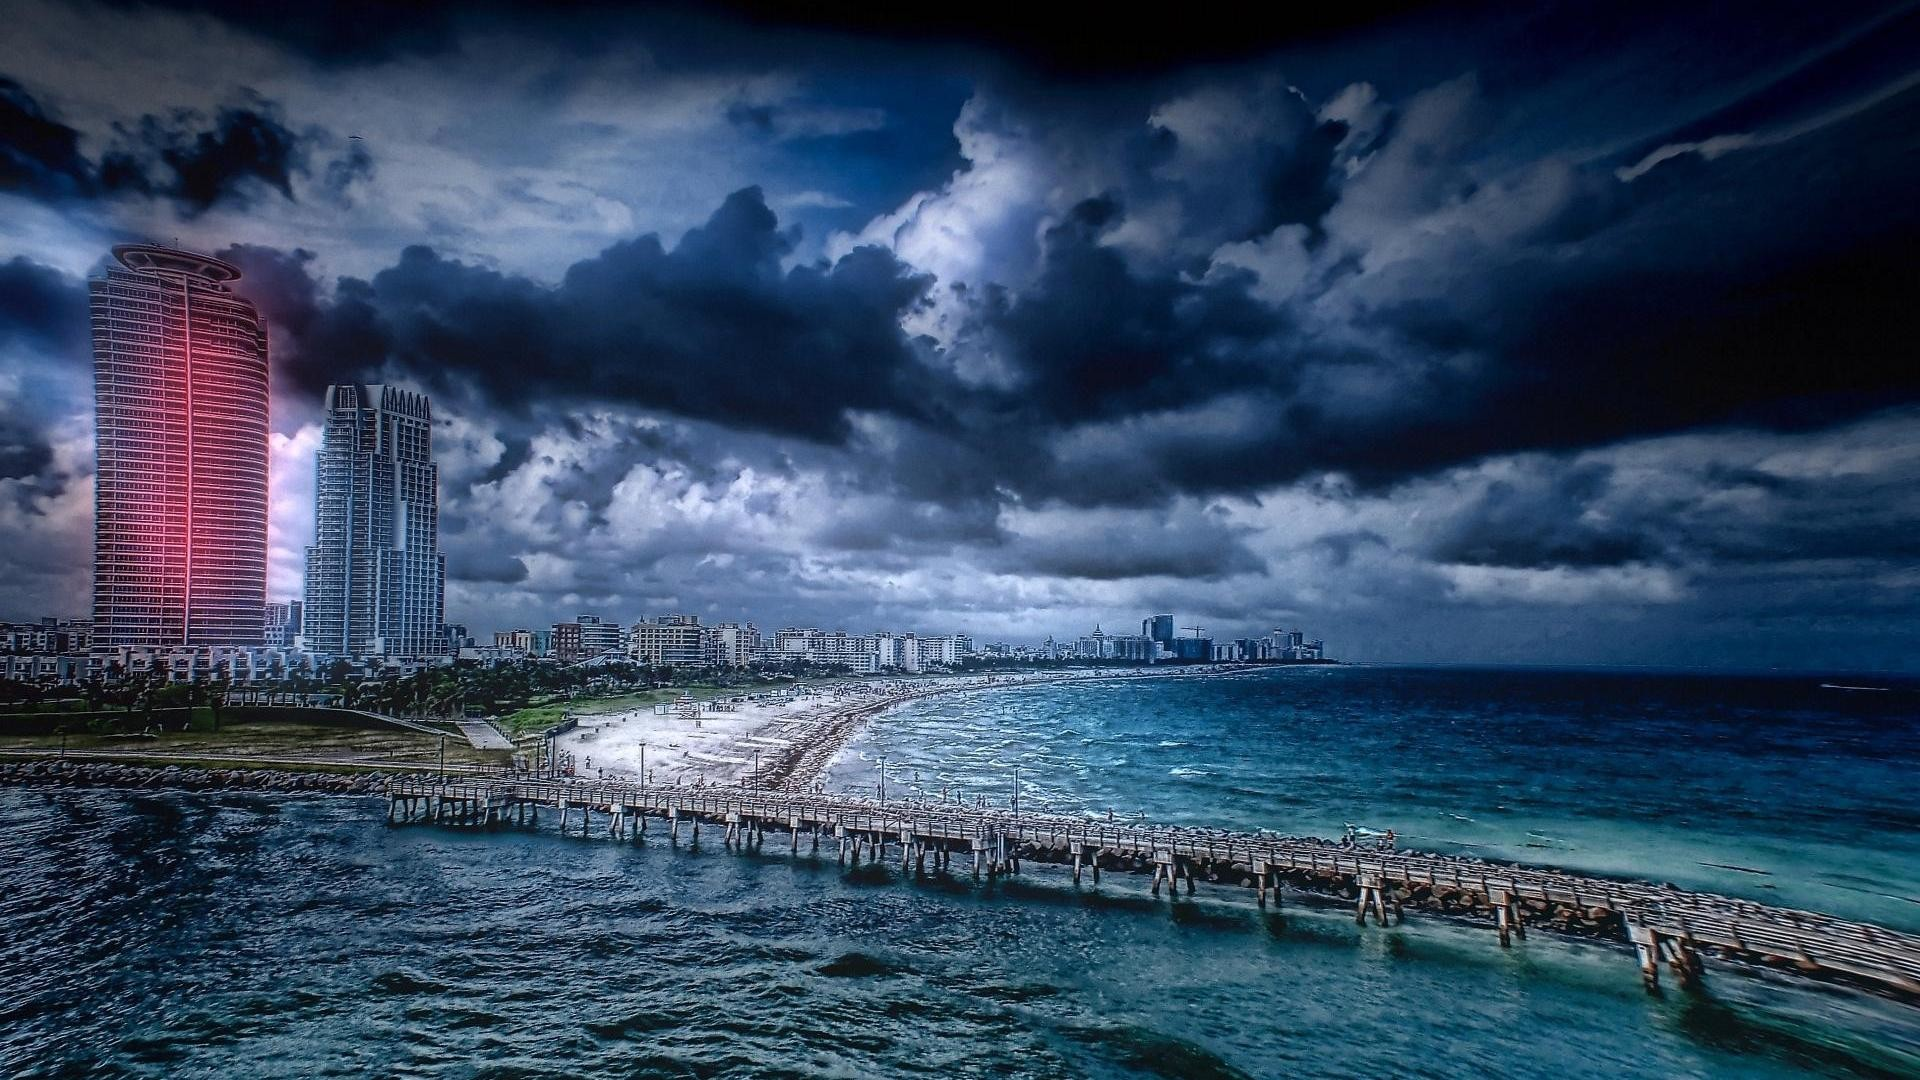 Miami Beach desktop wallpapers   Beaches wallpapers 0 HTML code. computer  desktop background best for widescreens available in .